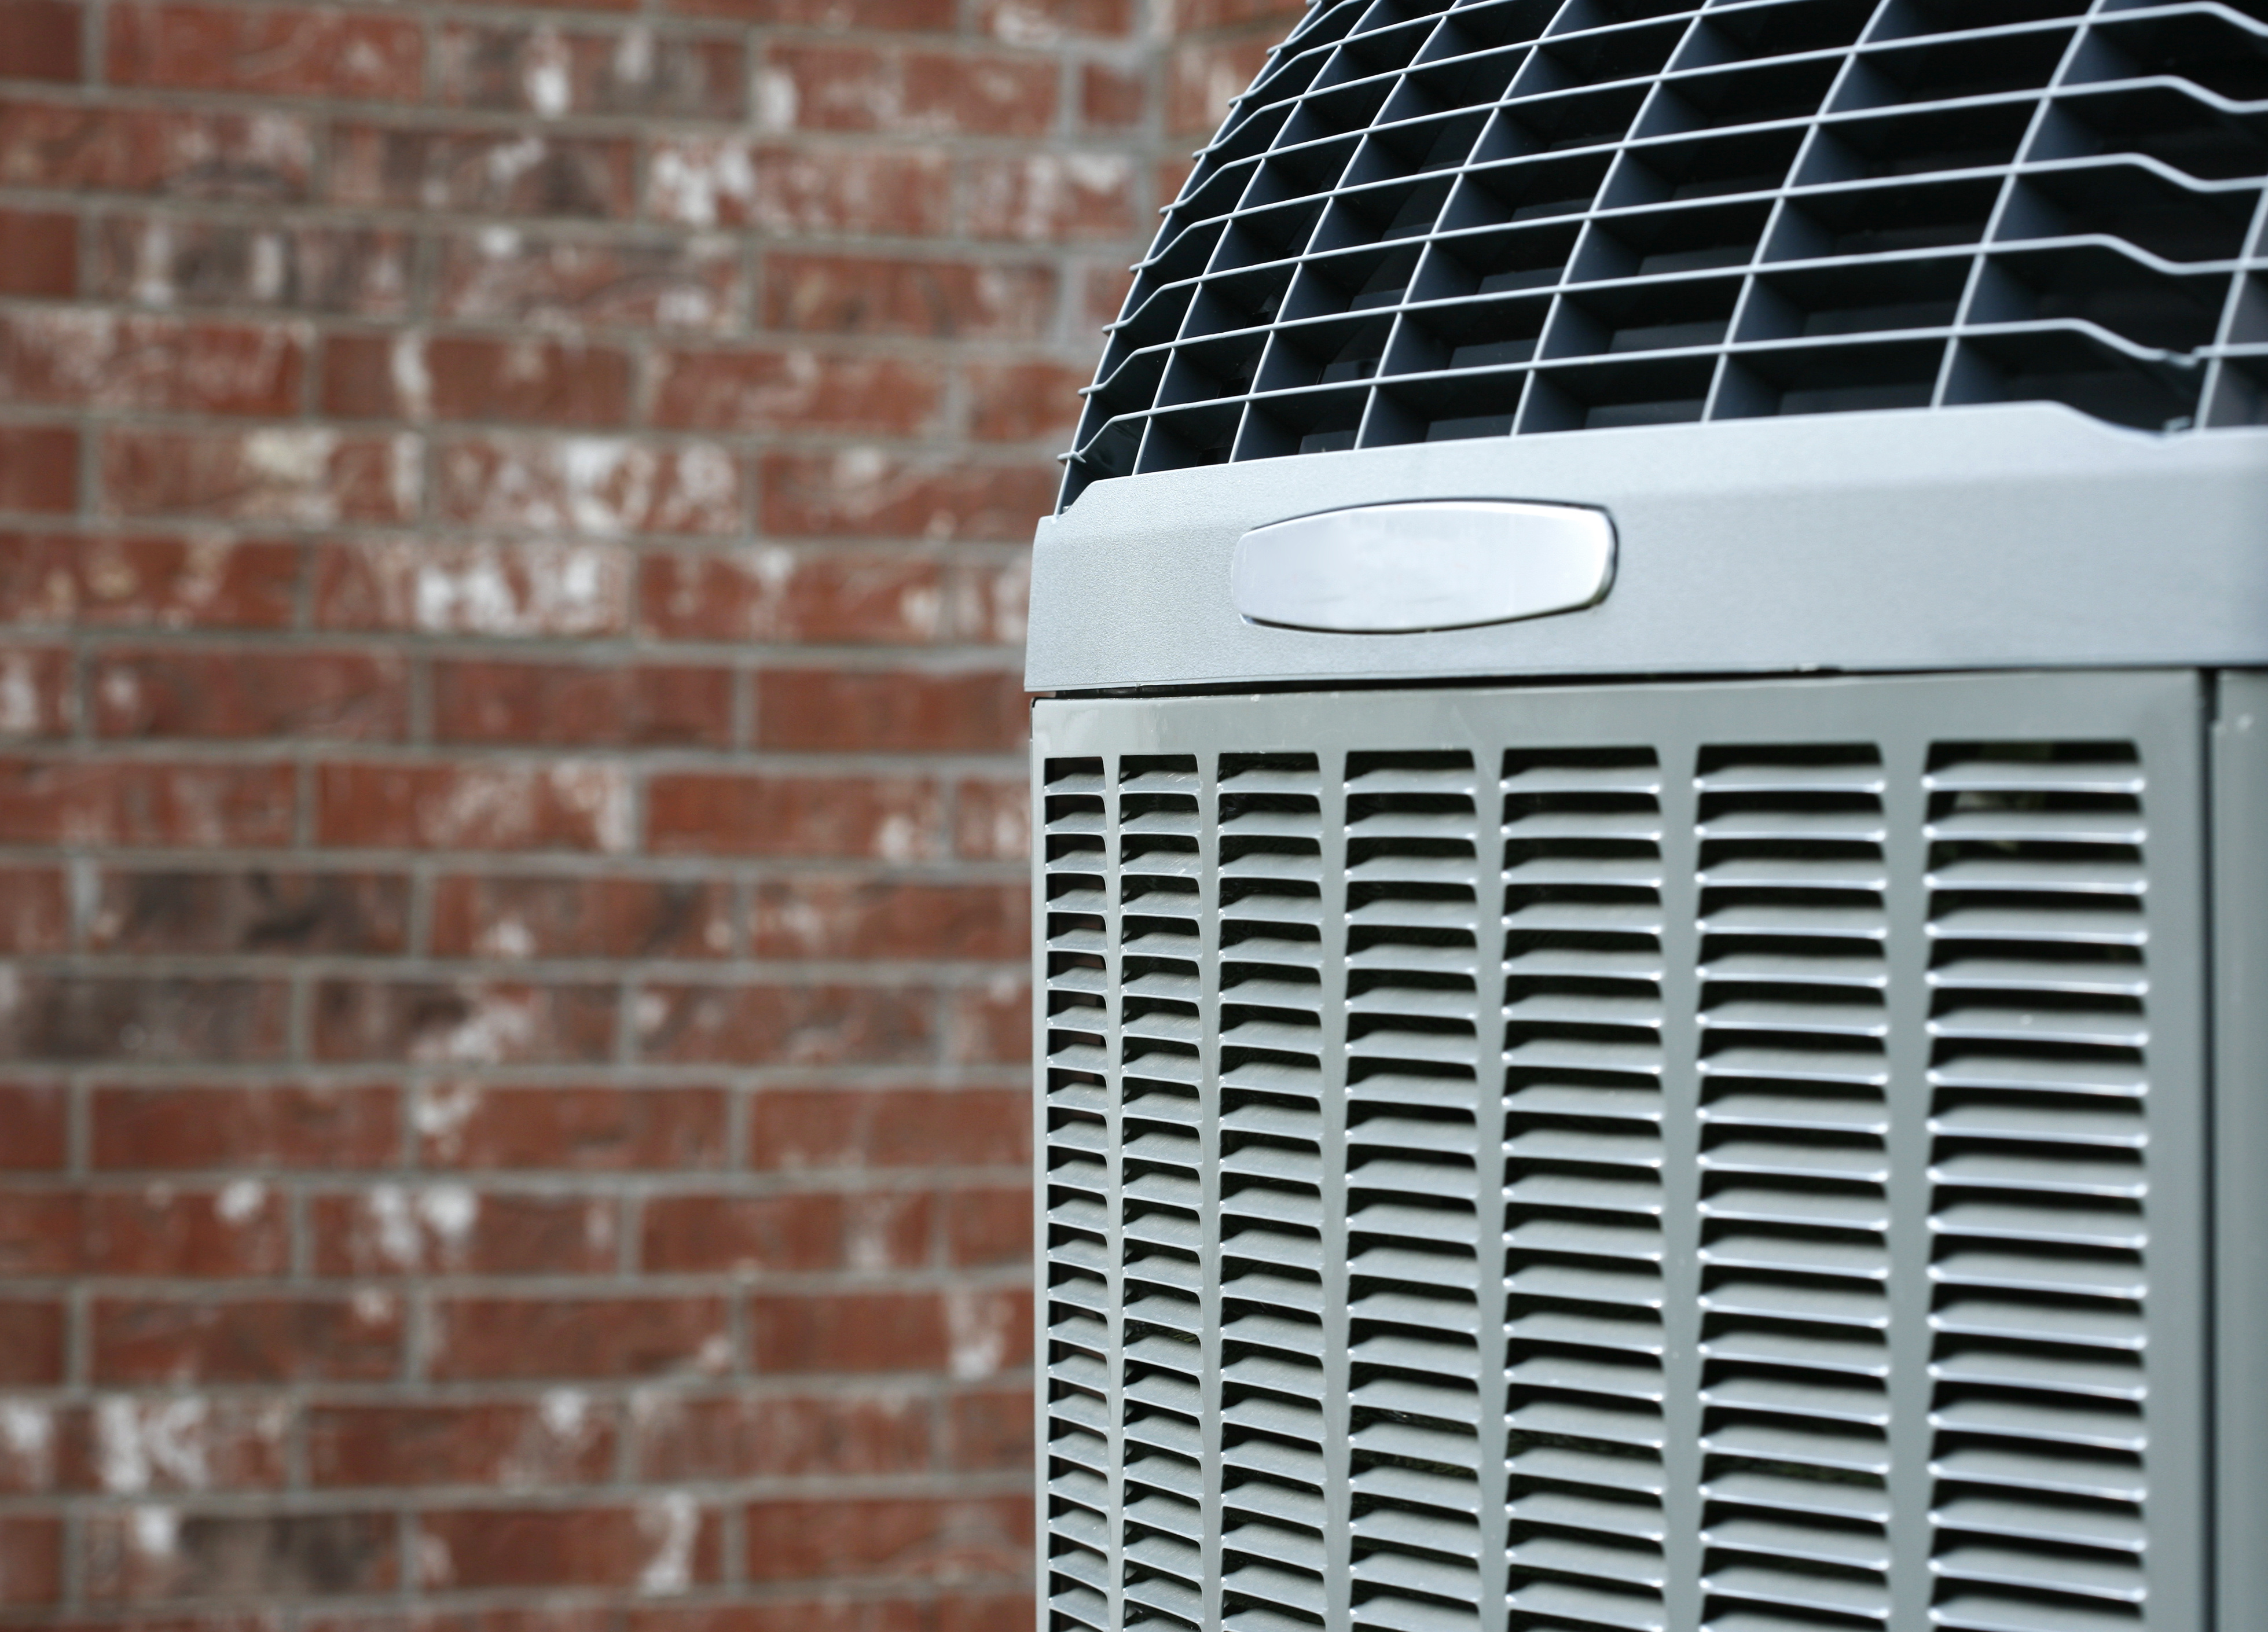 Average cost of new furnace and ac for home - Hvac Options For Your Home